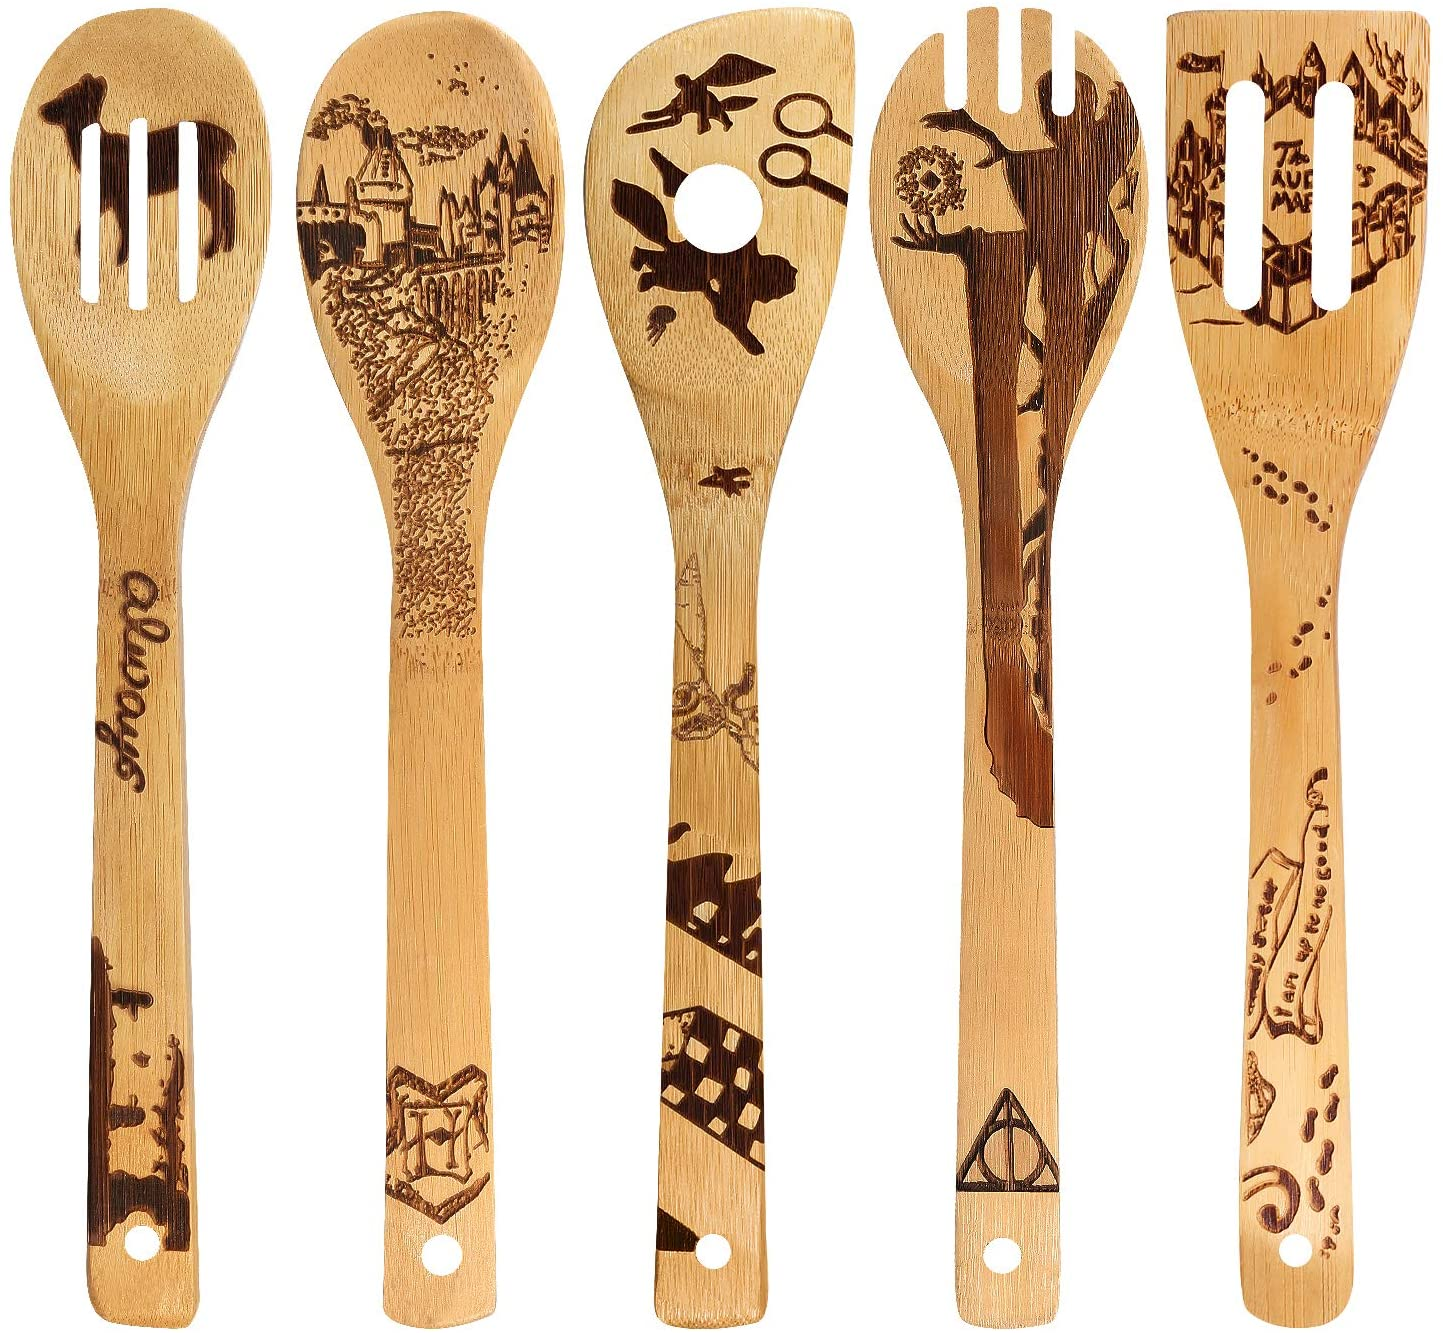 Organic Bamboo Spoons Cooking witchy fall kitchen decor